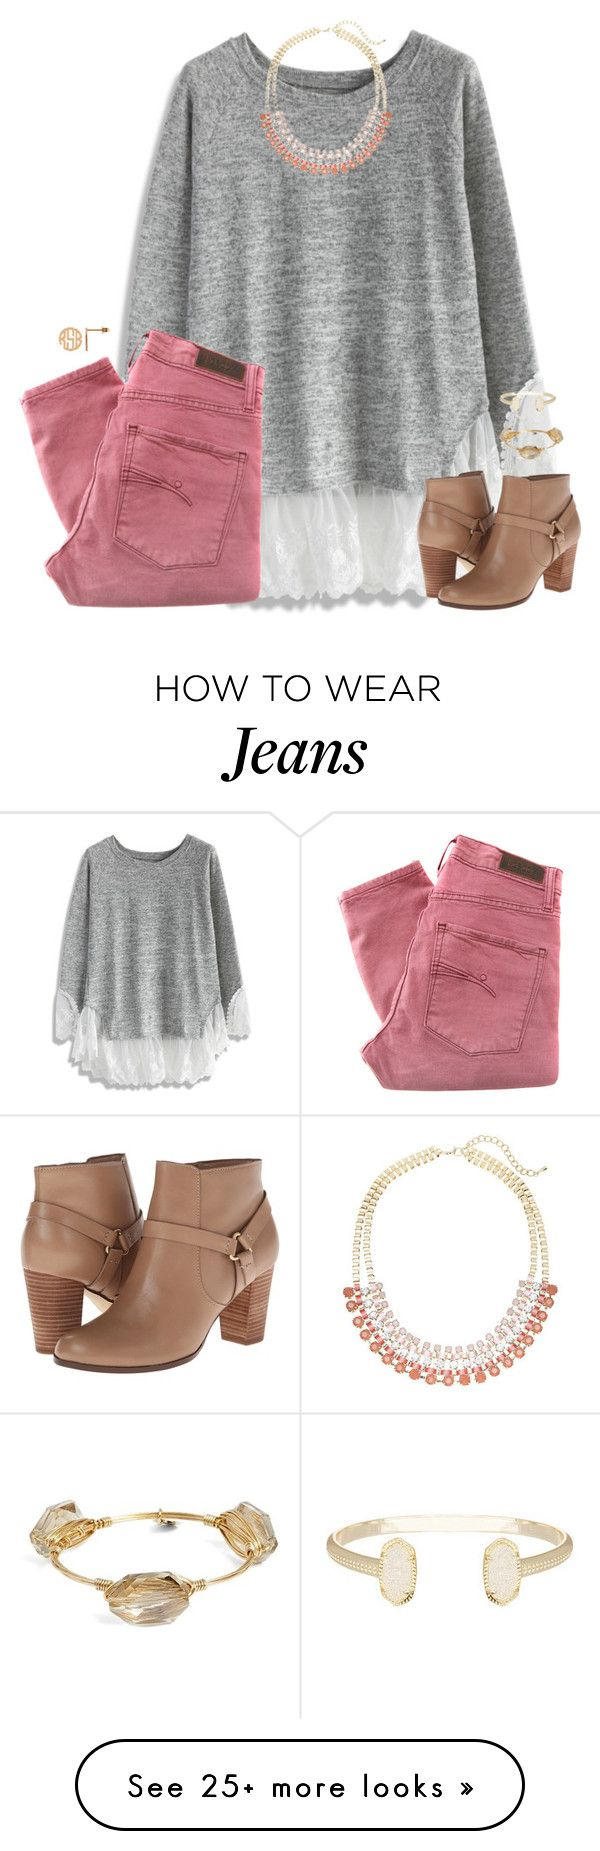 """""""people who can draw a star without having crossing lines in the middle really have their life together."""" by kaley-ii on Polyvore featuring Chicwish, Nobody Denim, Lane Bryant, Cole Haan, Bourbon and Boweties and Kendra Scott"""